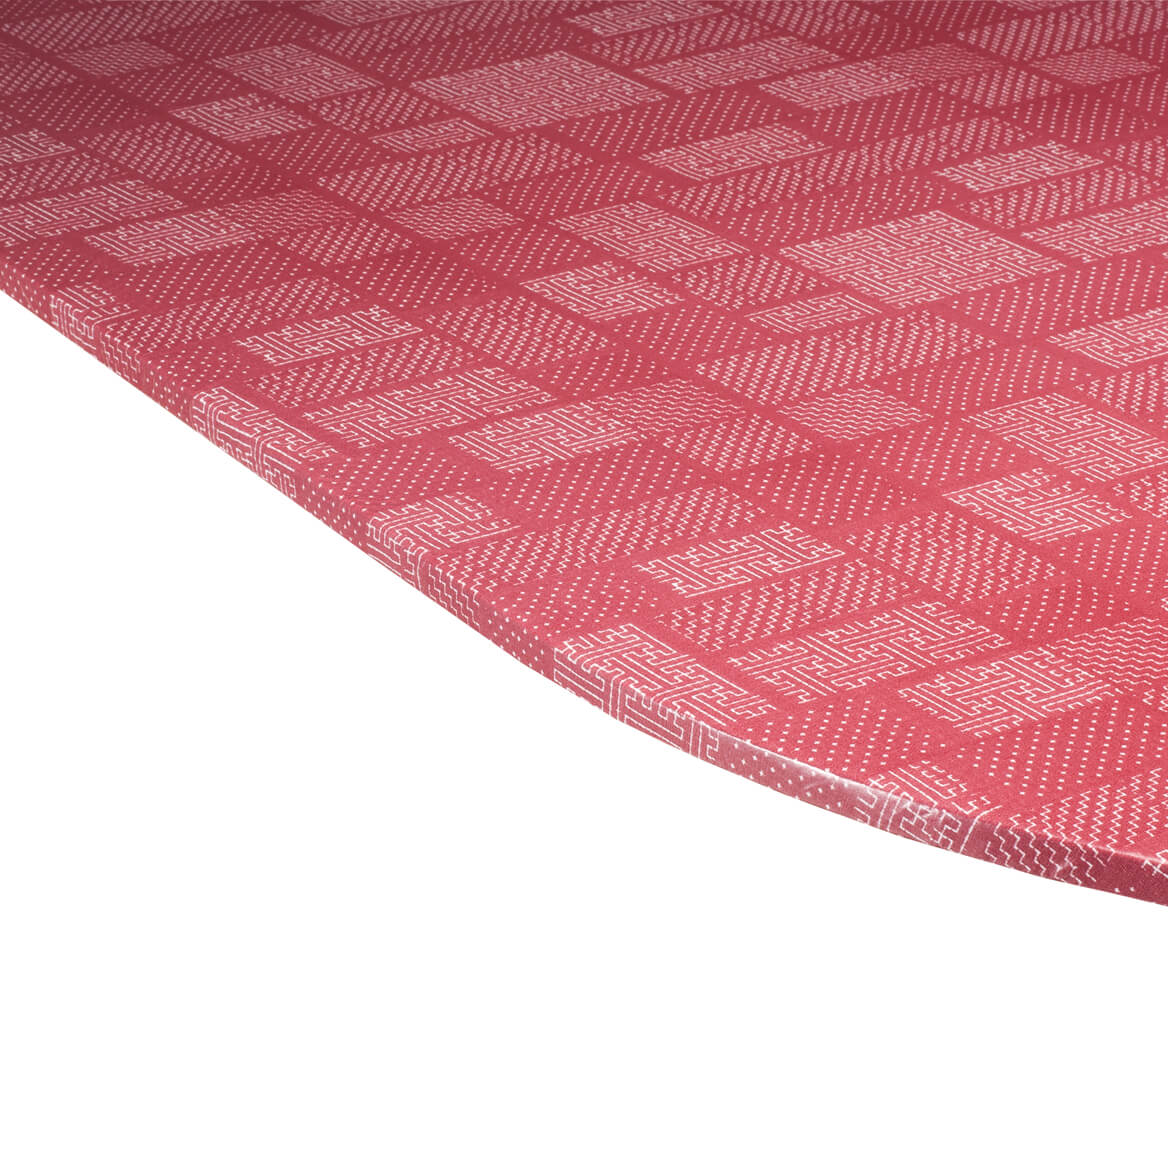 Patchwork Vinyl Elasticized Tablecover by Home-Style Kitchen™-358638